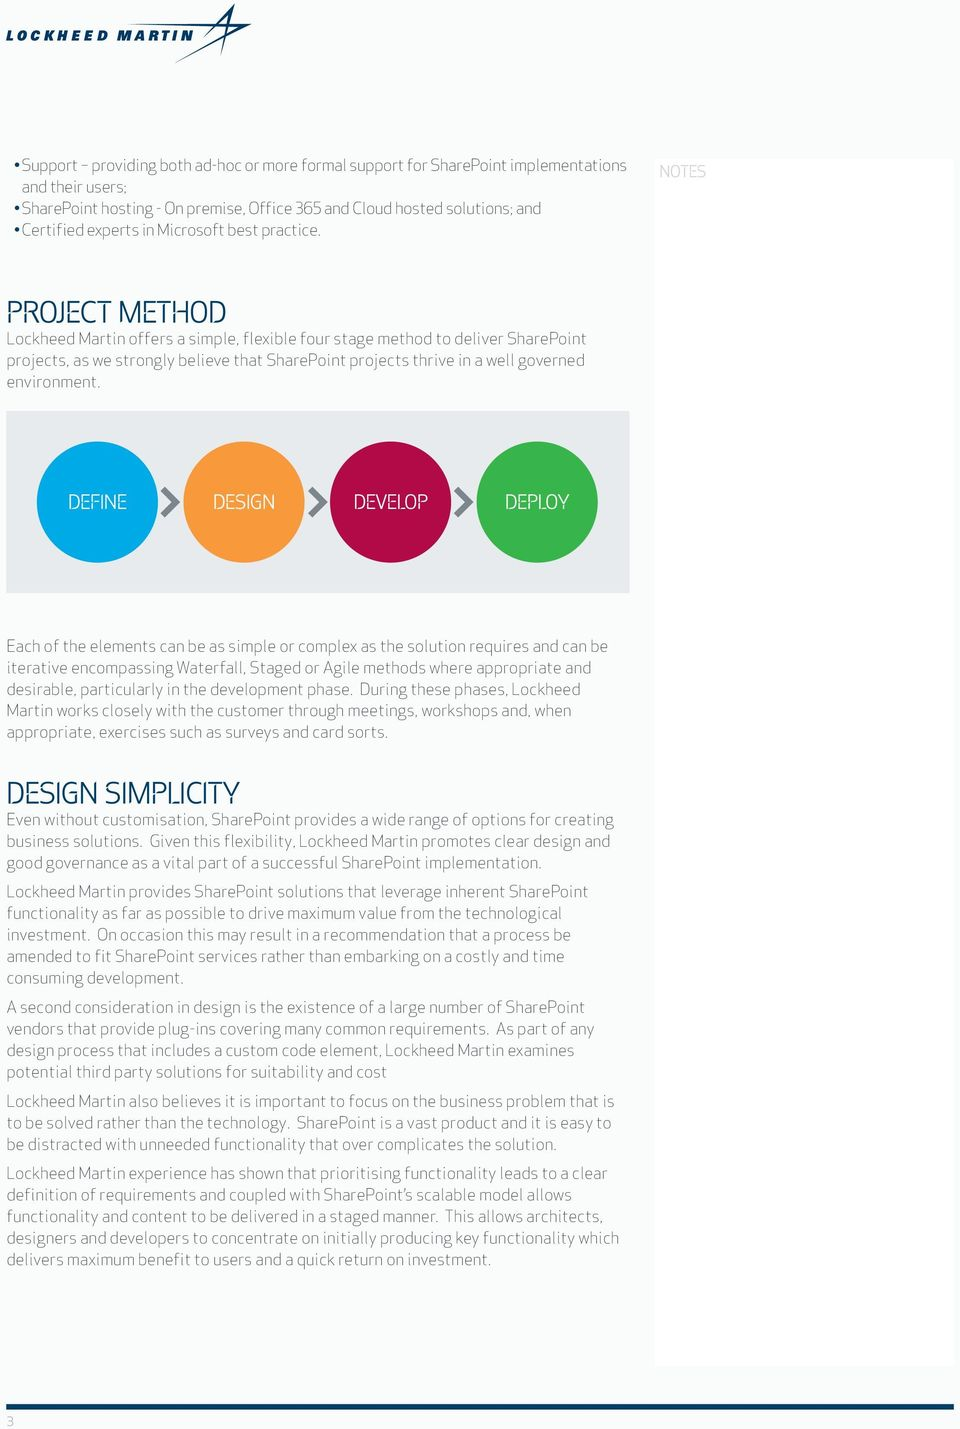 PROJECT METHOD Lockheed Martin offers a simple, flexible four stage method to deliver SharePoint projects, as we strongly believe that SharePoint projects thrive in a well governed environment.